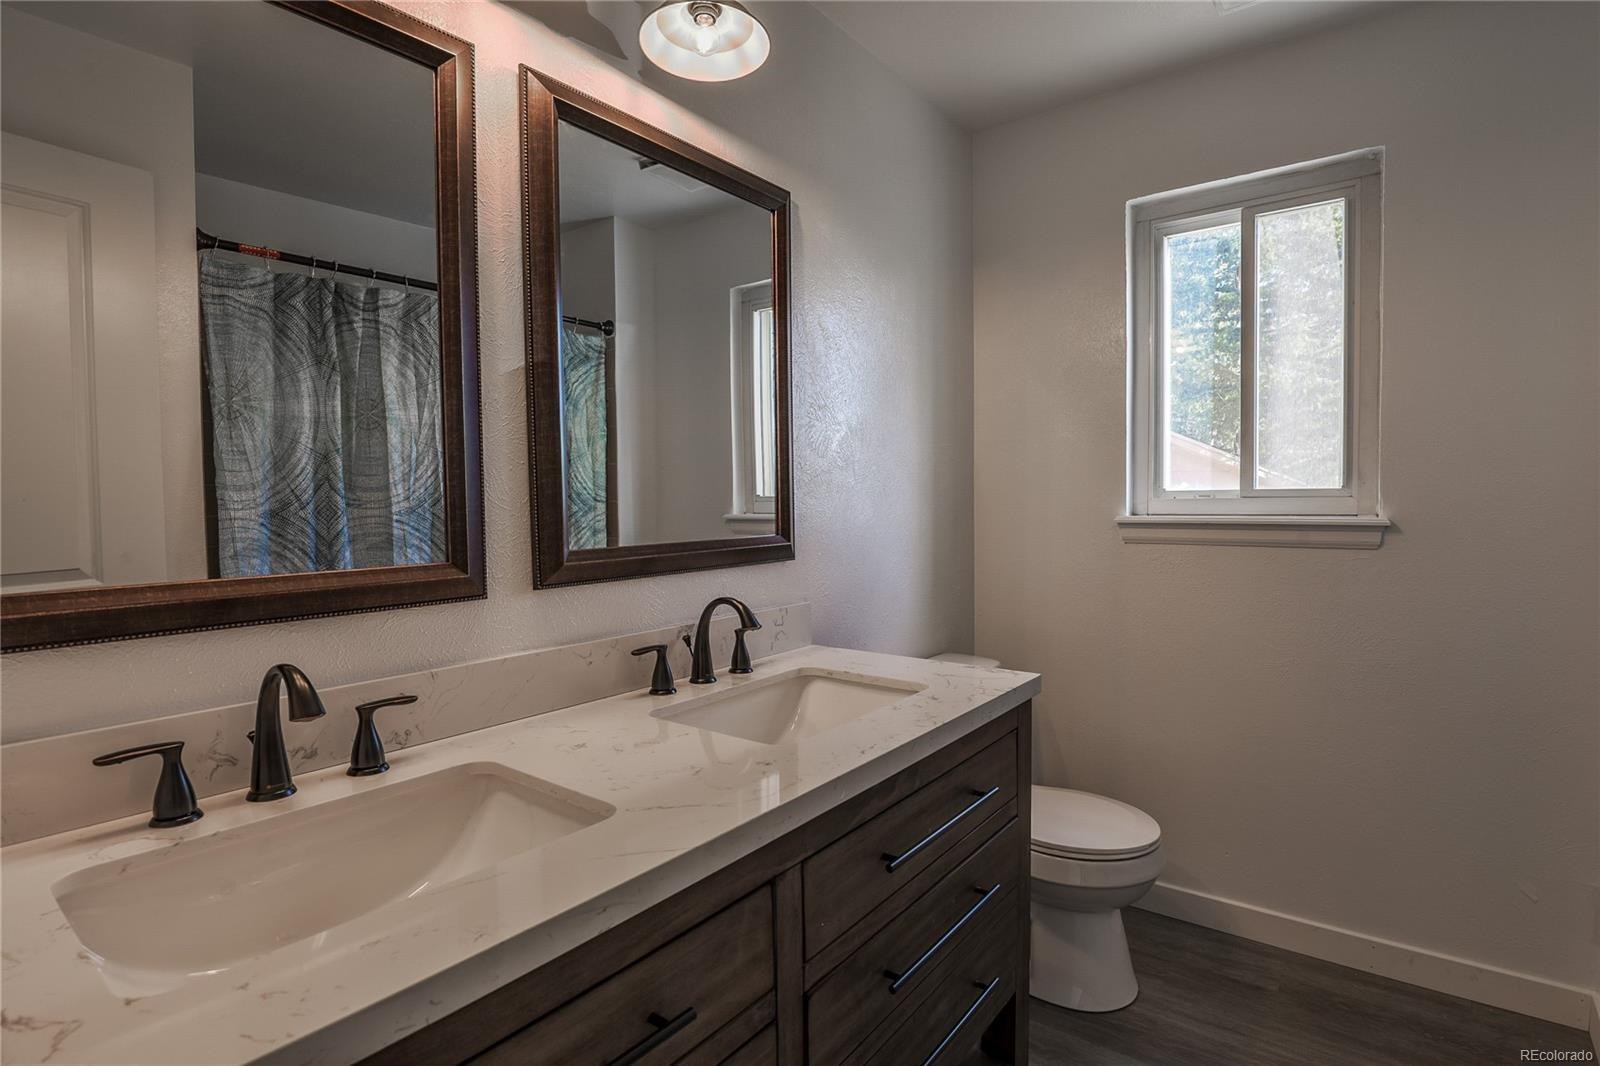 MLS# 8183776 - 7 - 2547 W 104th Circle, Westminster, CO 80234